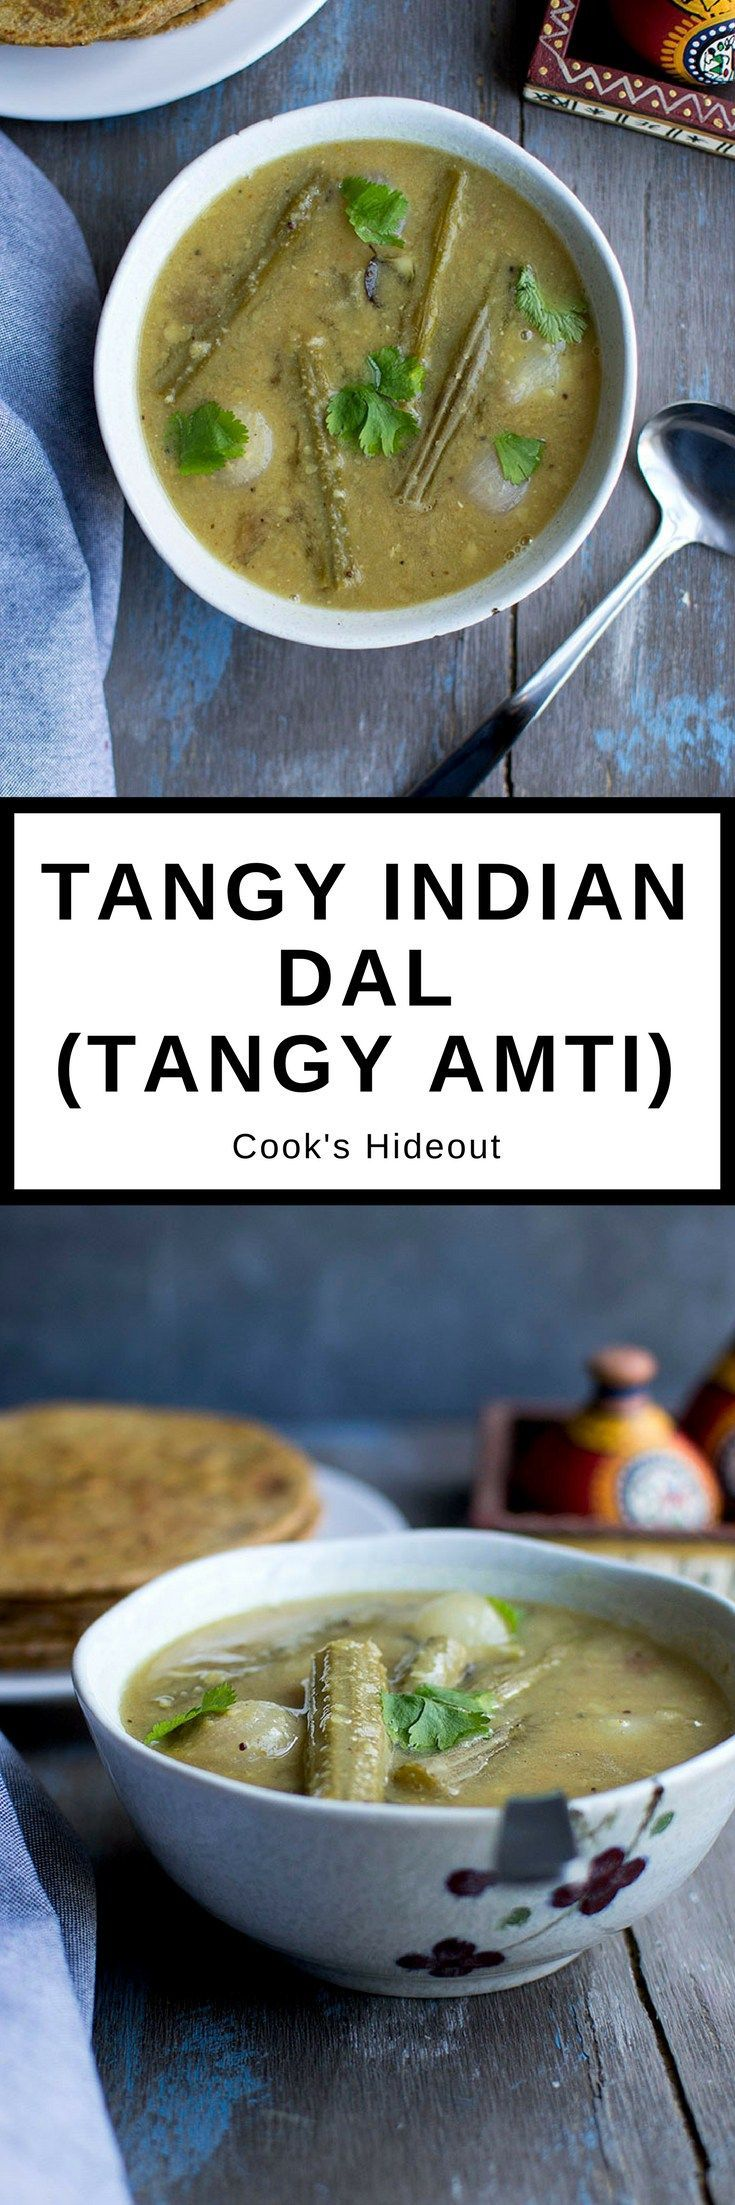 Tangy Amti is a simple everyday lentil dish that is hearty, comforting and very delicious. It uses freshly made Goda Masala which gives the dish an amazing flavor.